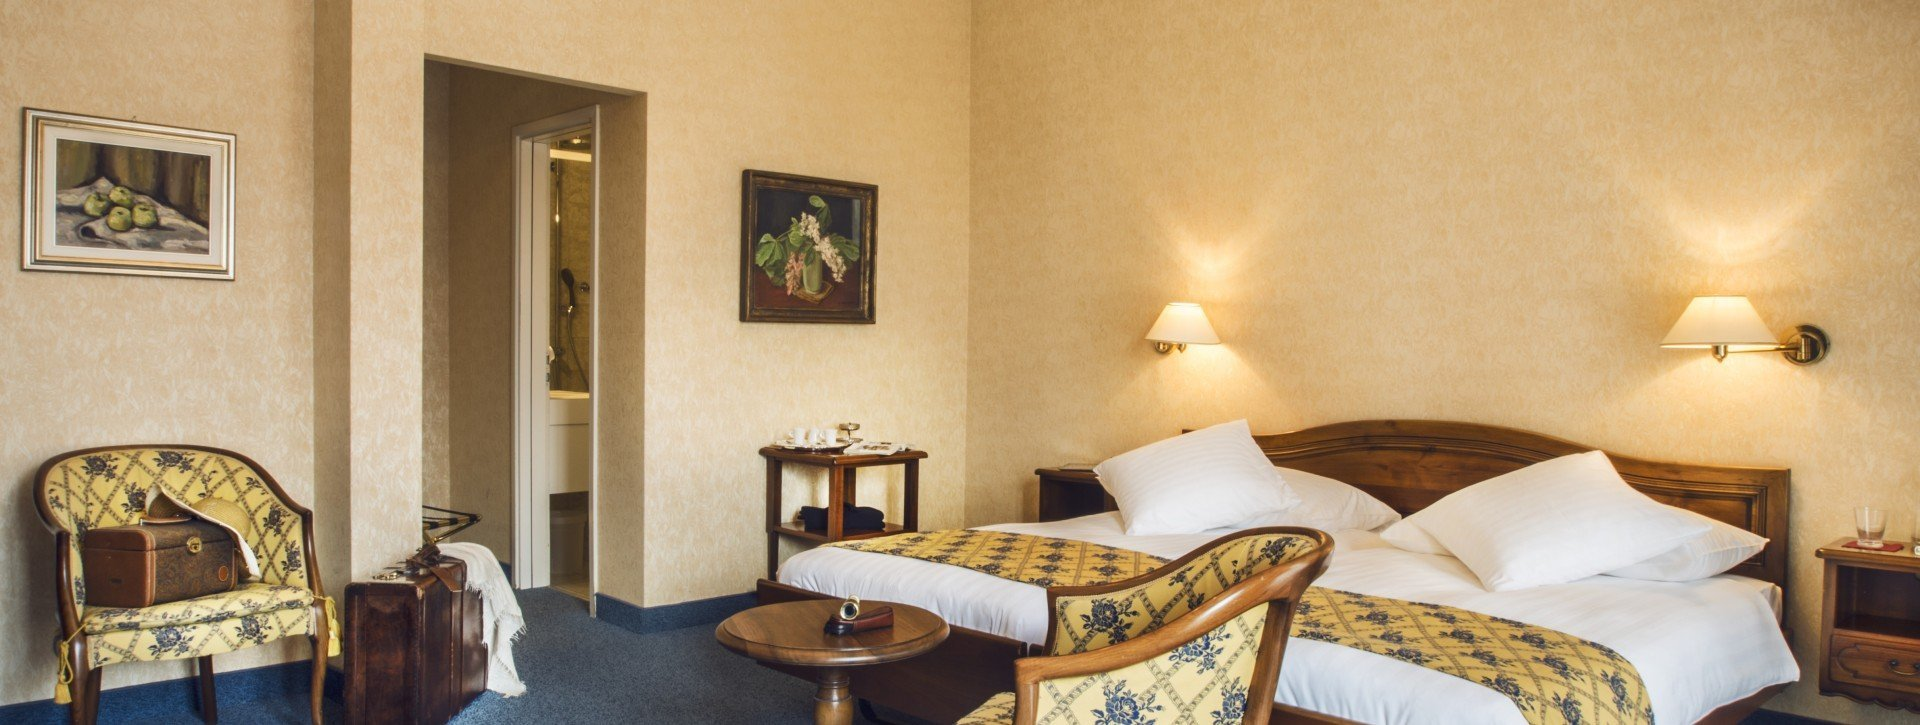 Spacious Double Superior room of the International au Lac Historic Lakeside Hotel